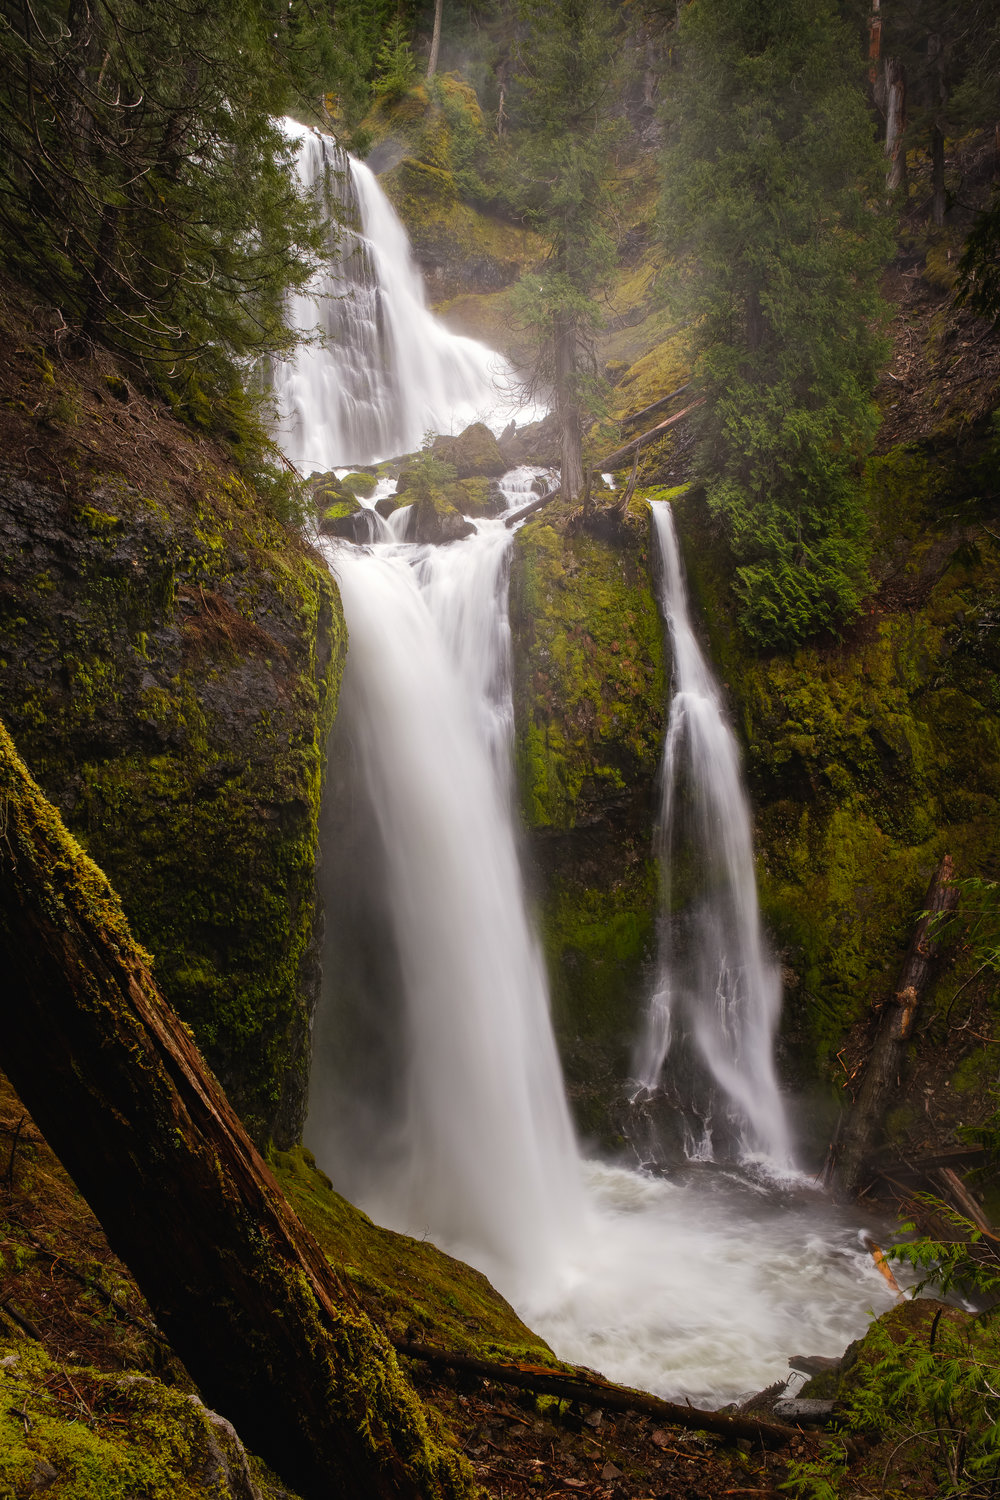 This waterfall can be found in an area which allows some logging done in a sustainable way called resource management. It just so happens to be in the Gifford Pinchot National Forest.